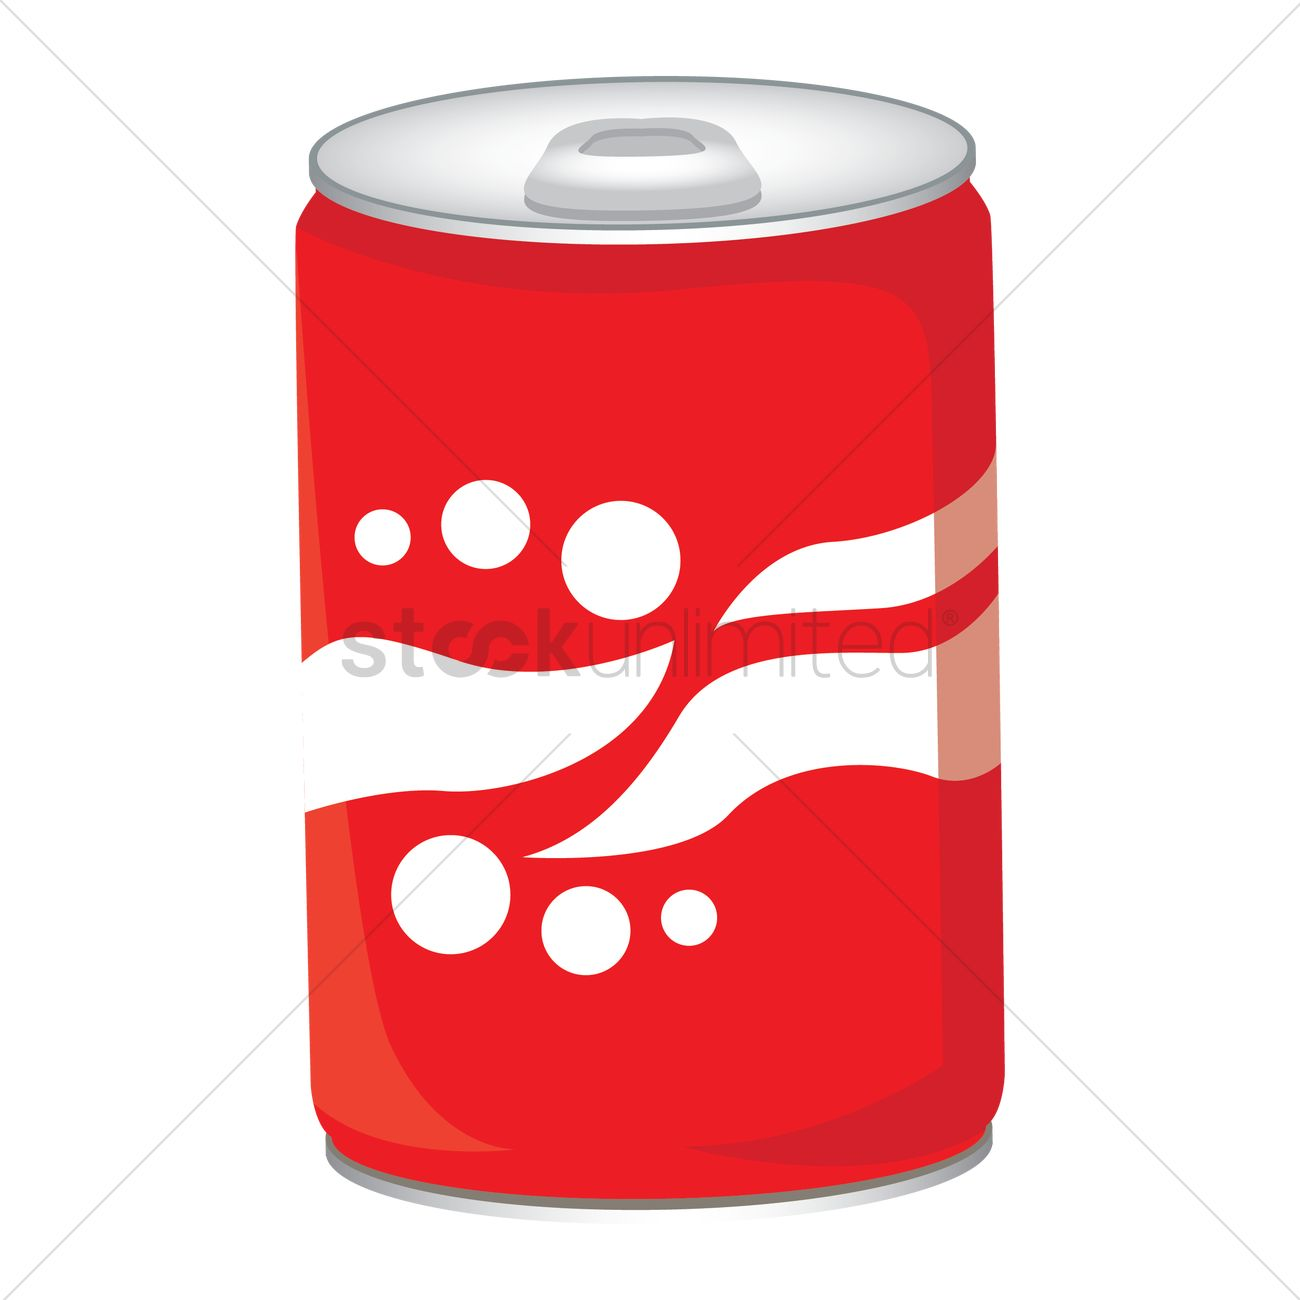 1300x1300 Soda Can Vector Image